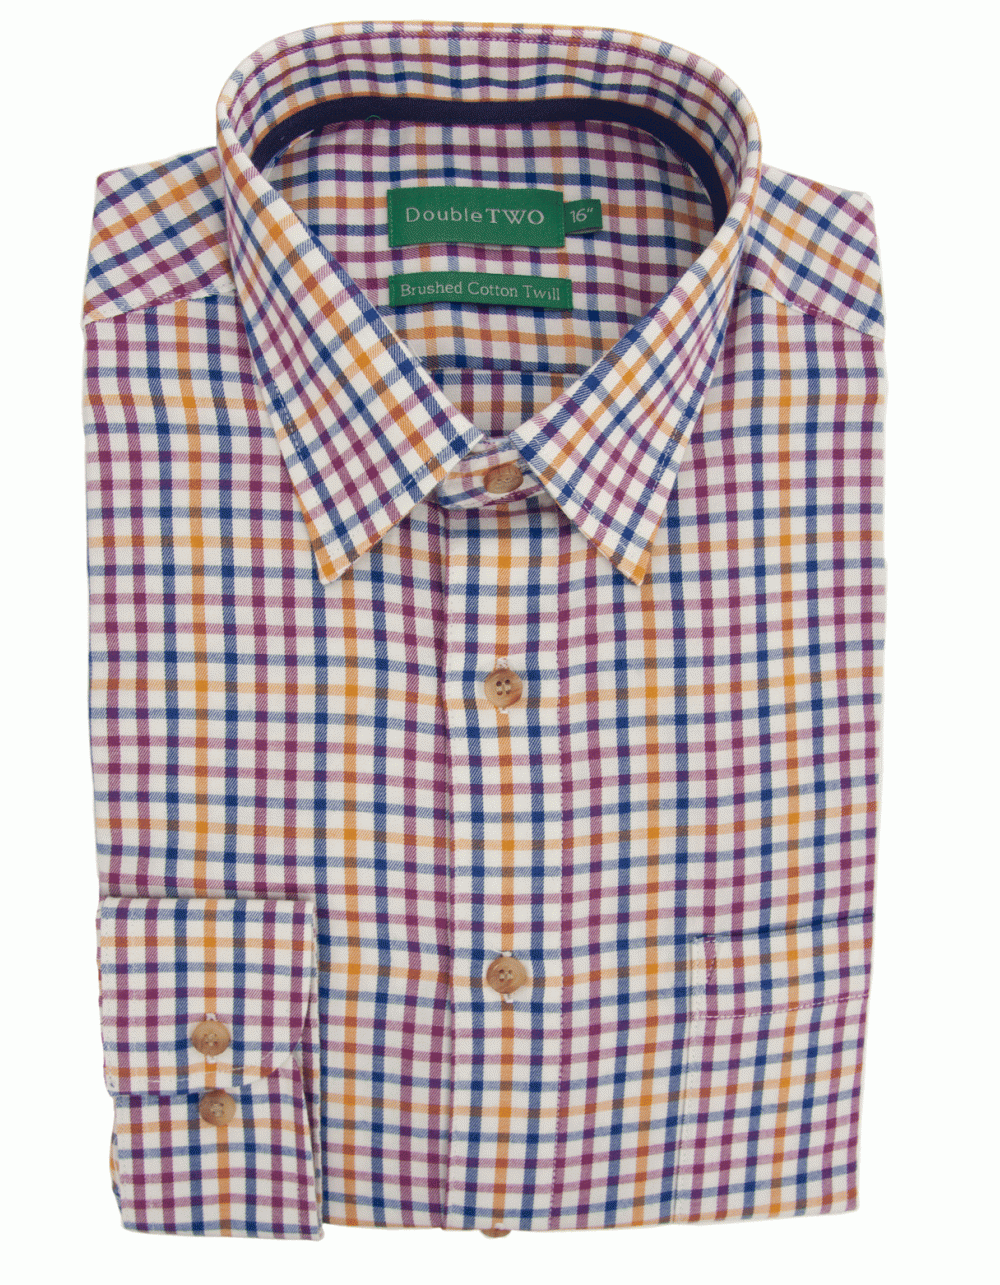 Brushed cotton twill check shirt gold fields menswear for Brushed cotton twill shirt